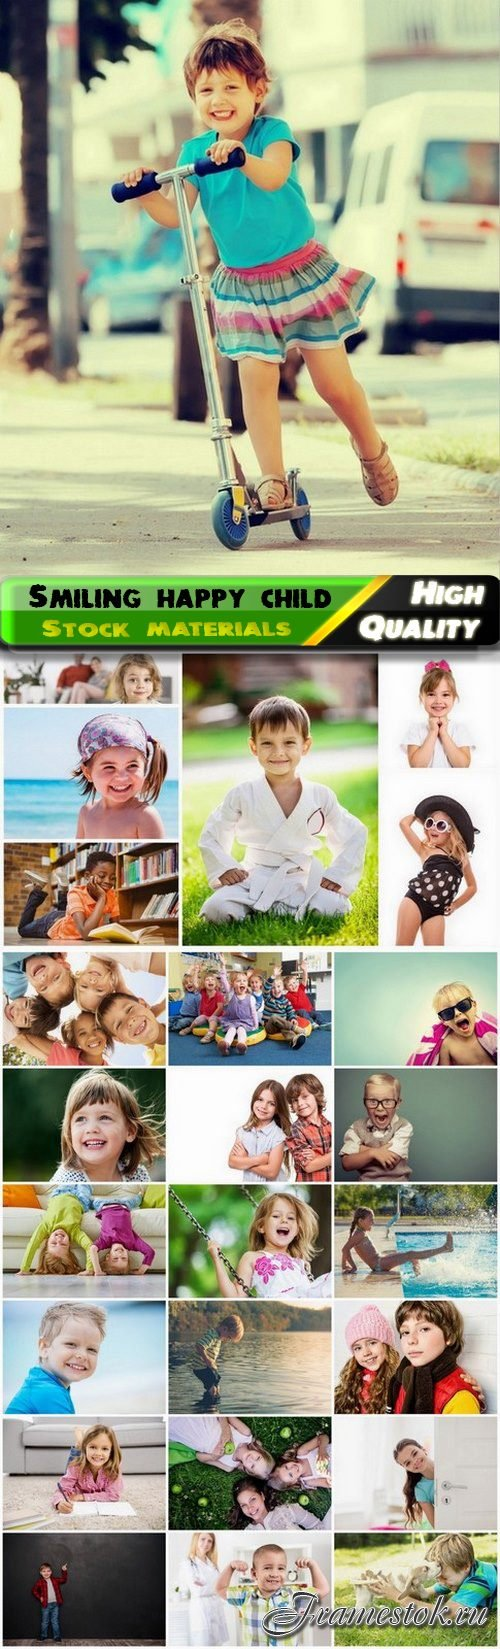 Smiling happy child and kids have fun 25 HQ Jpg